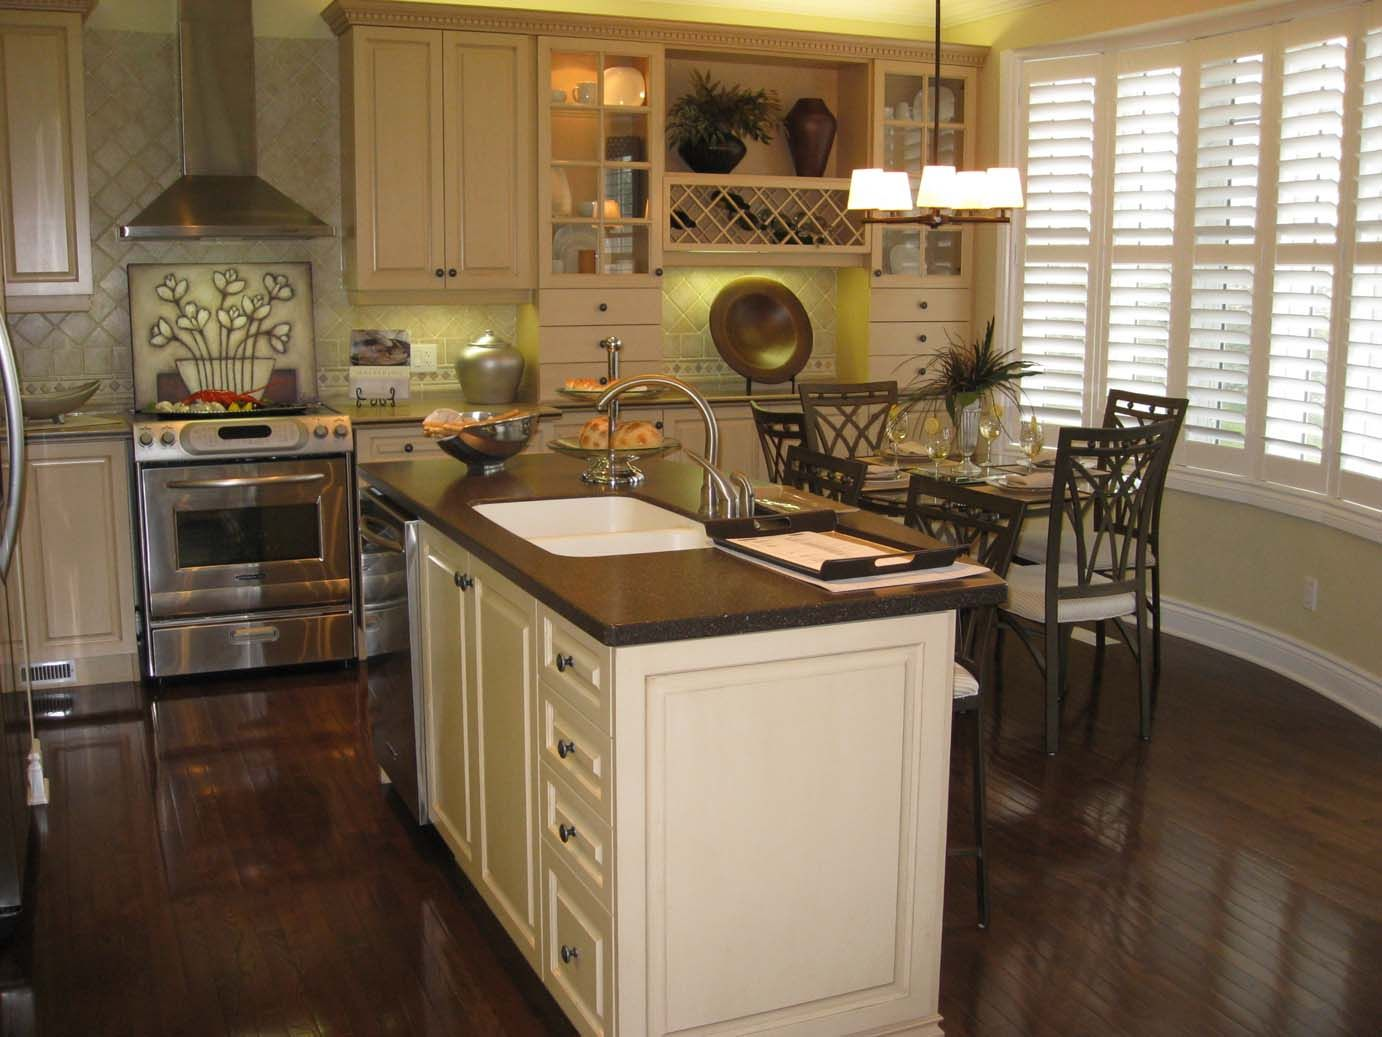 Antique white cabinets kitchen - White Kitchens With Dark Floors Countertops 2 Dark Floors Antique White Cabinets